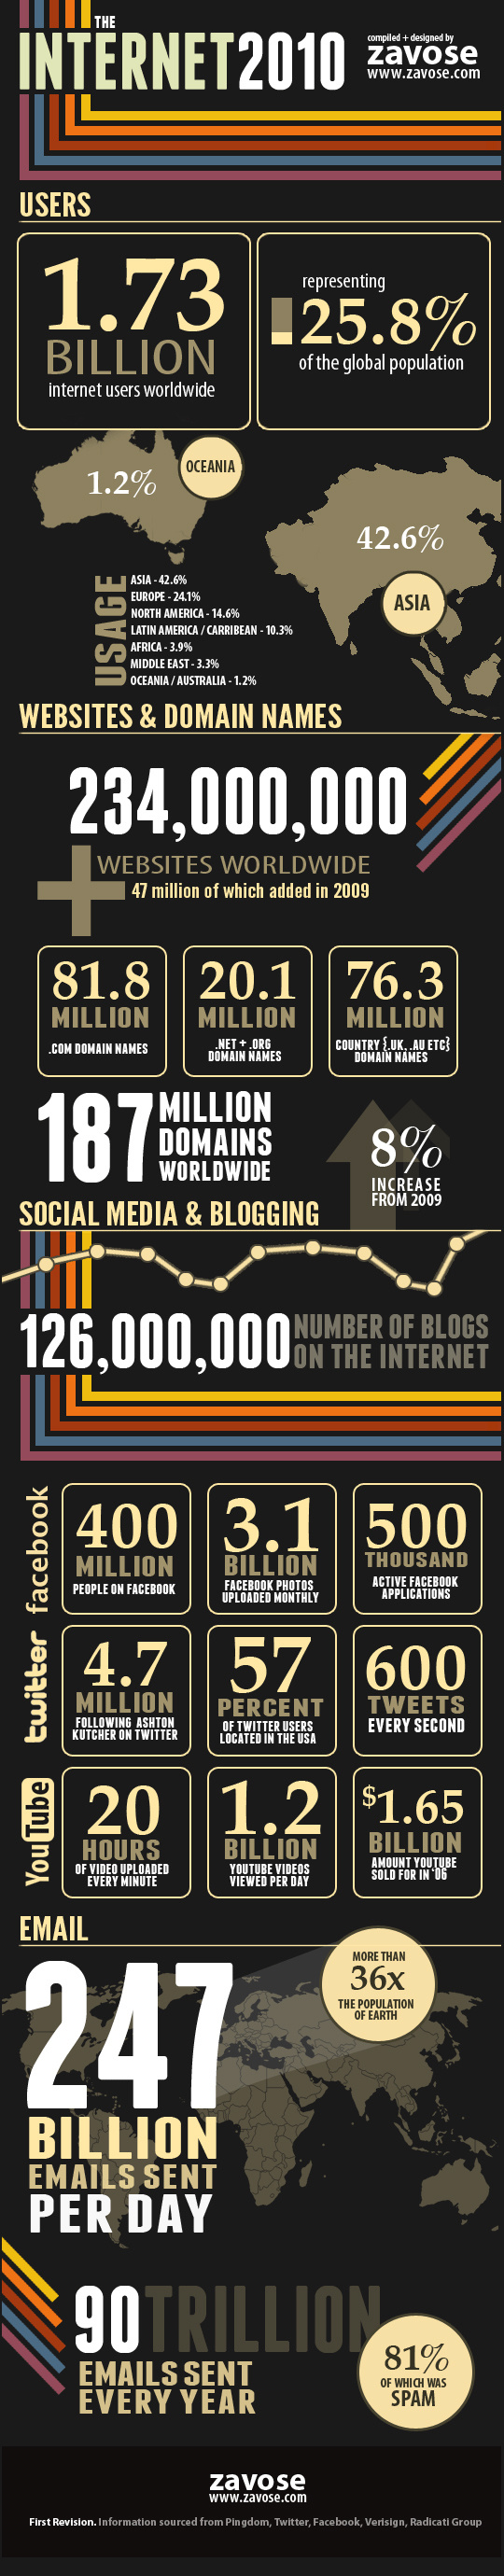 10 Most Insightful Infographics About Internet 5